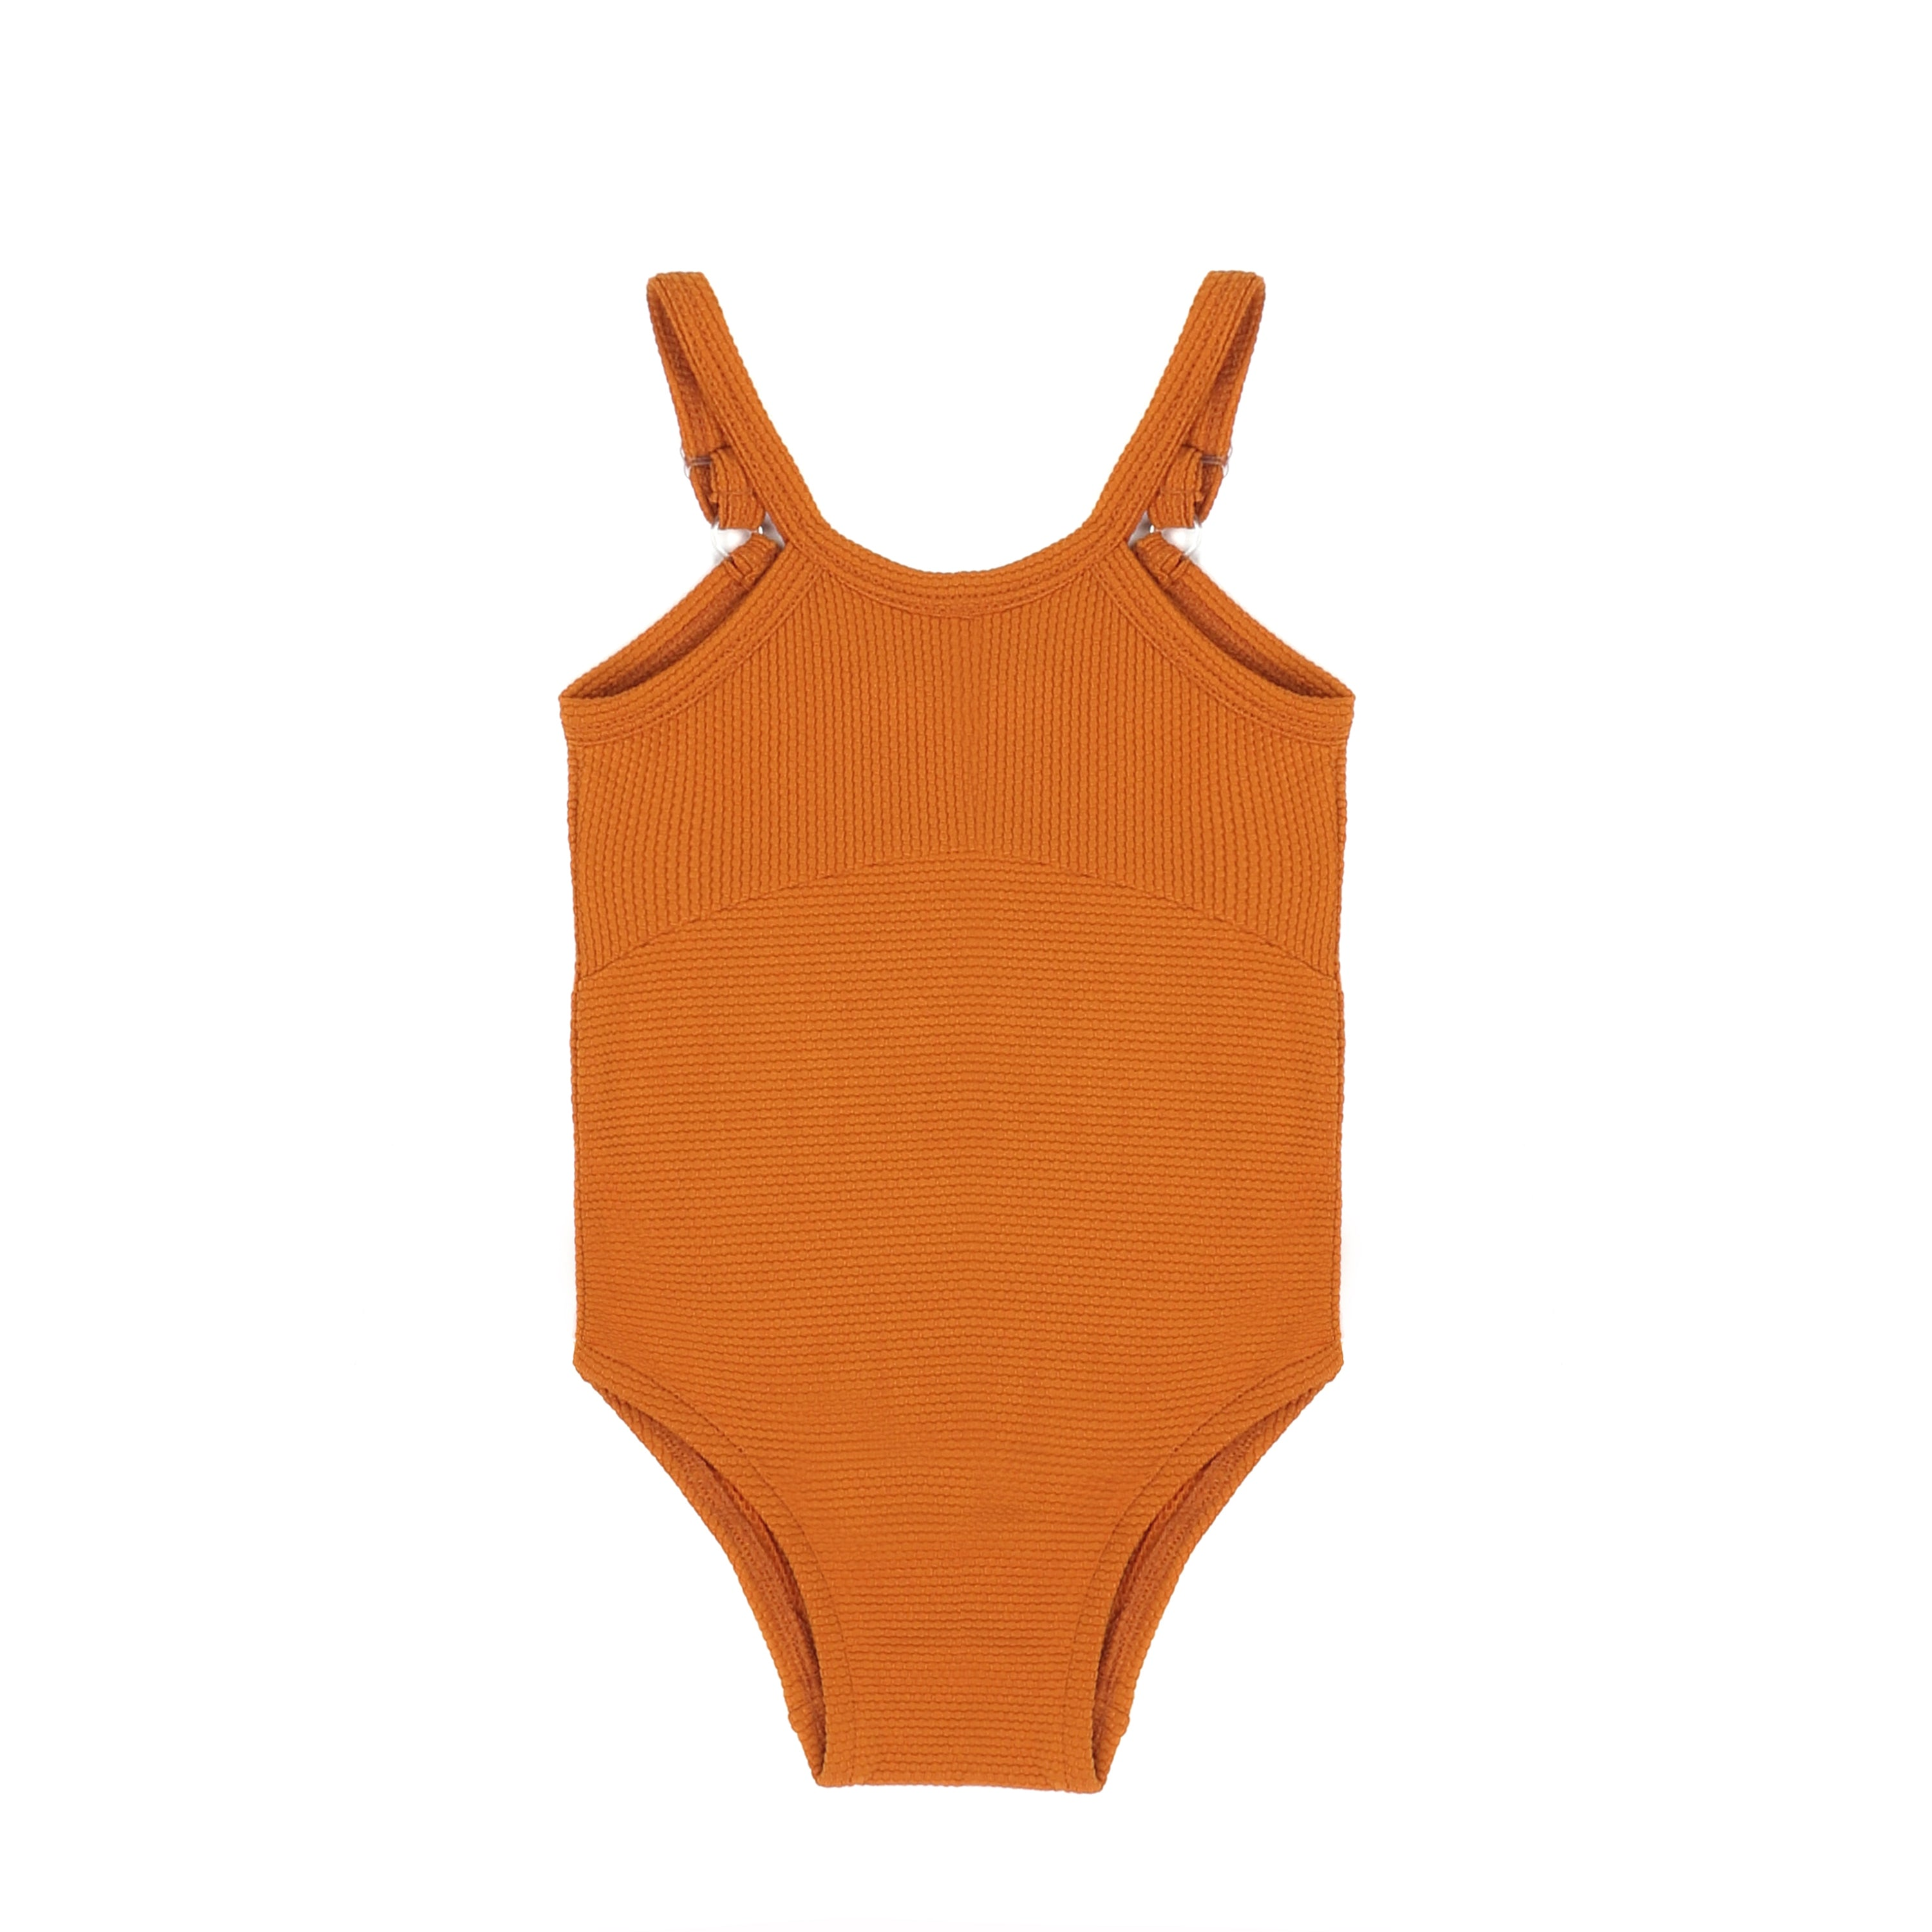 Swimsuit, tangerine, UPF50